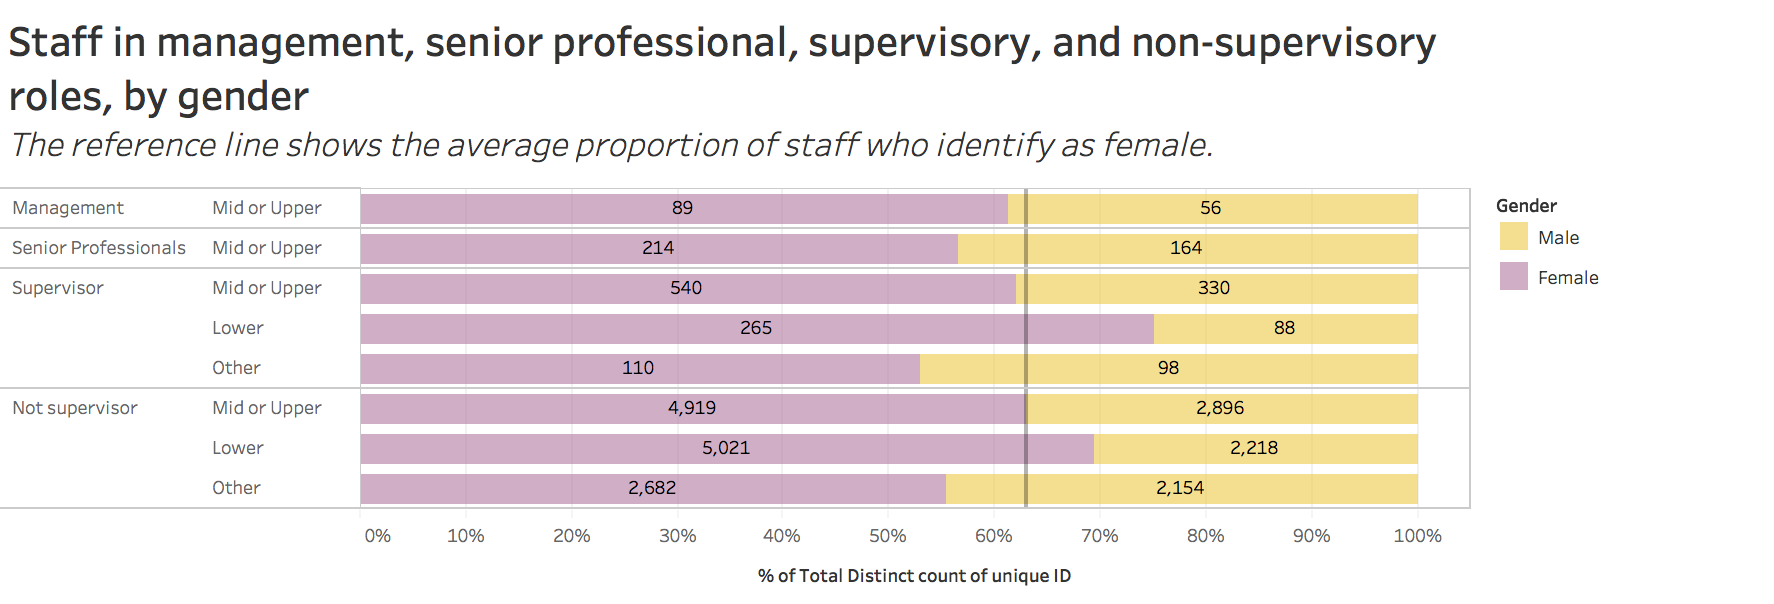 staff in management, senior professional, supervisory, and non-supervisory roles, by gender